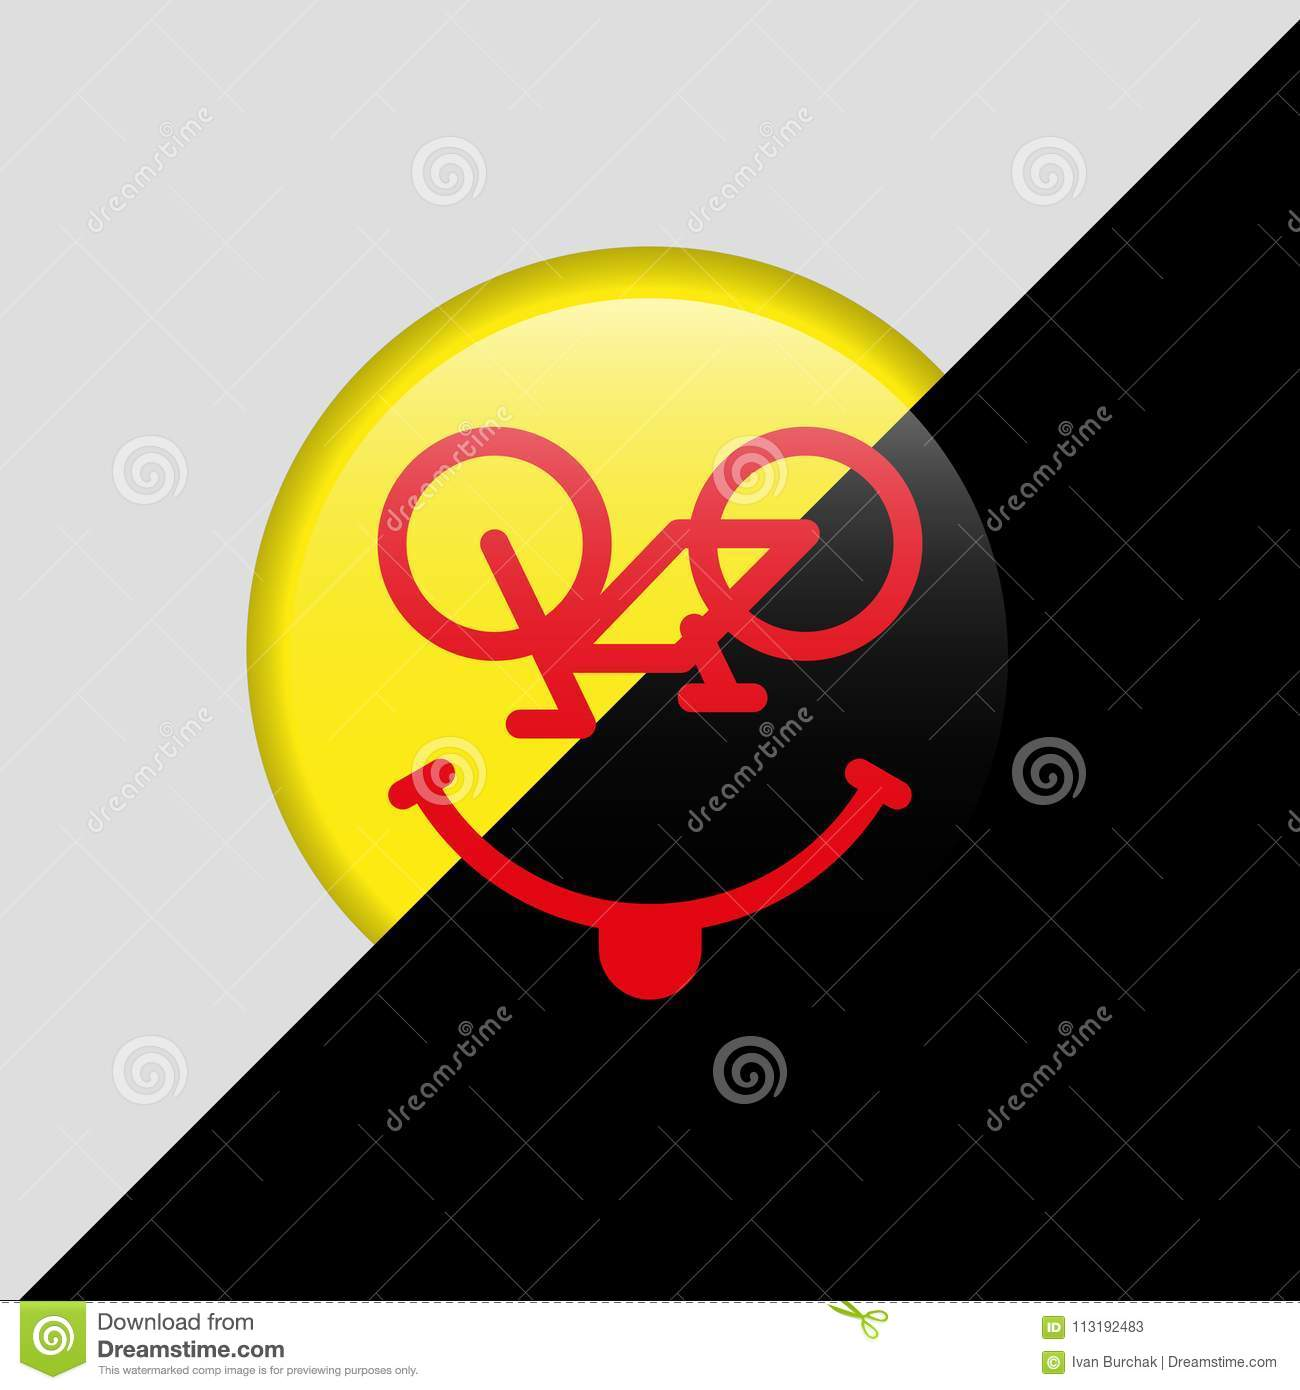 Vector Bicycle Emoji. Bike Smile, Emoticon or Smiling Face. 3D Yellow Badge and Black Backround. I Love Cycling Concept